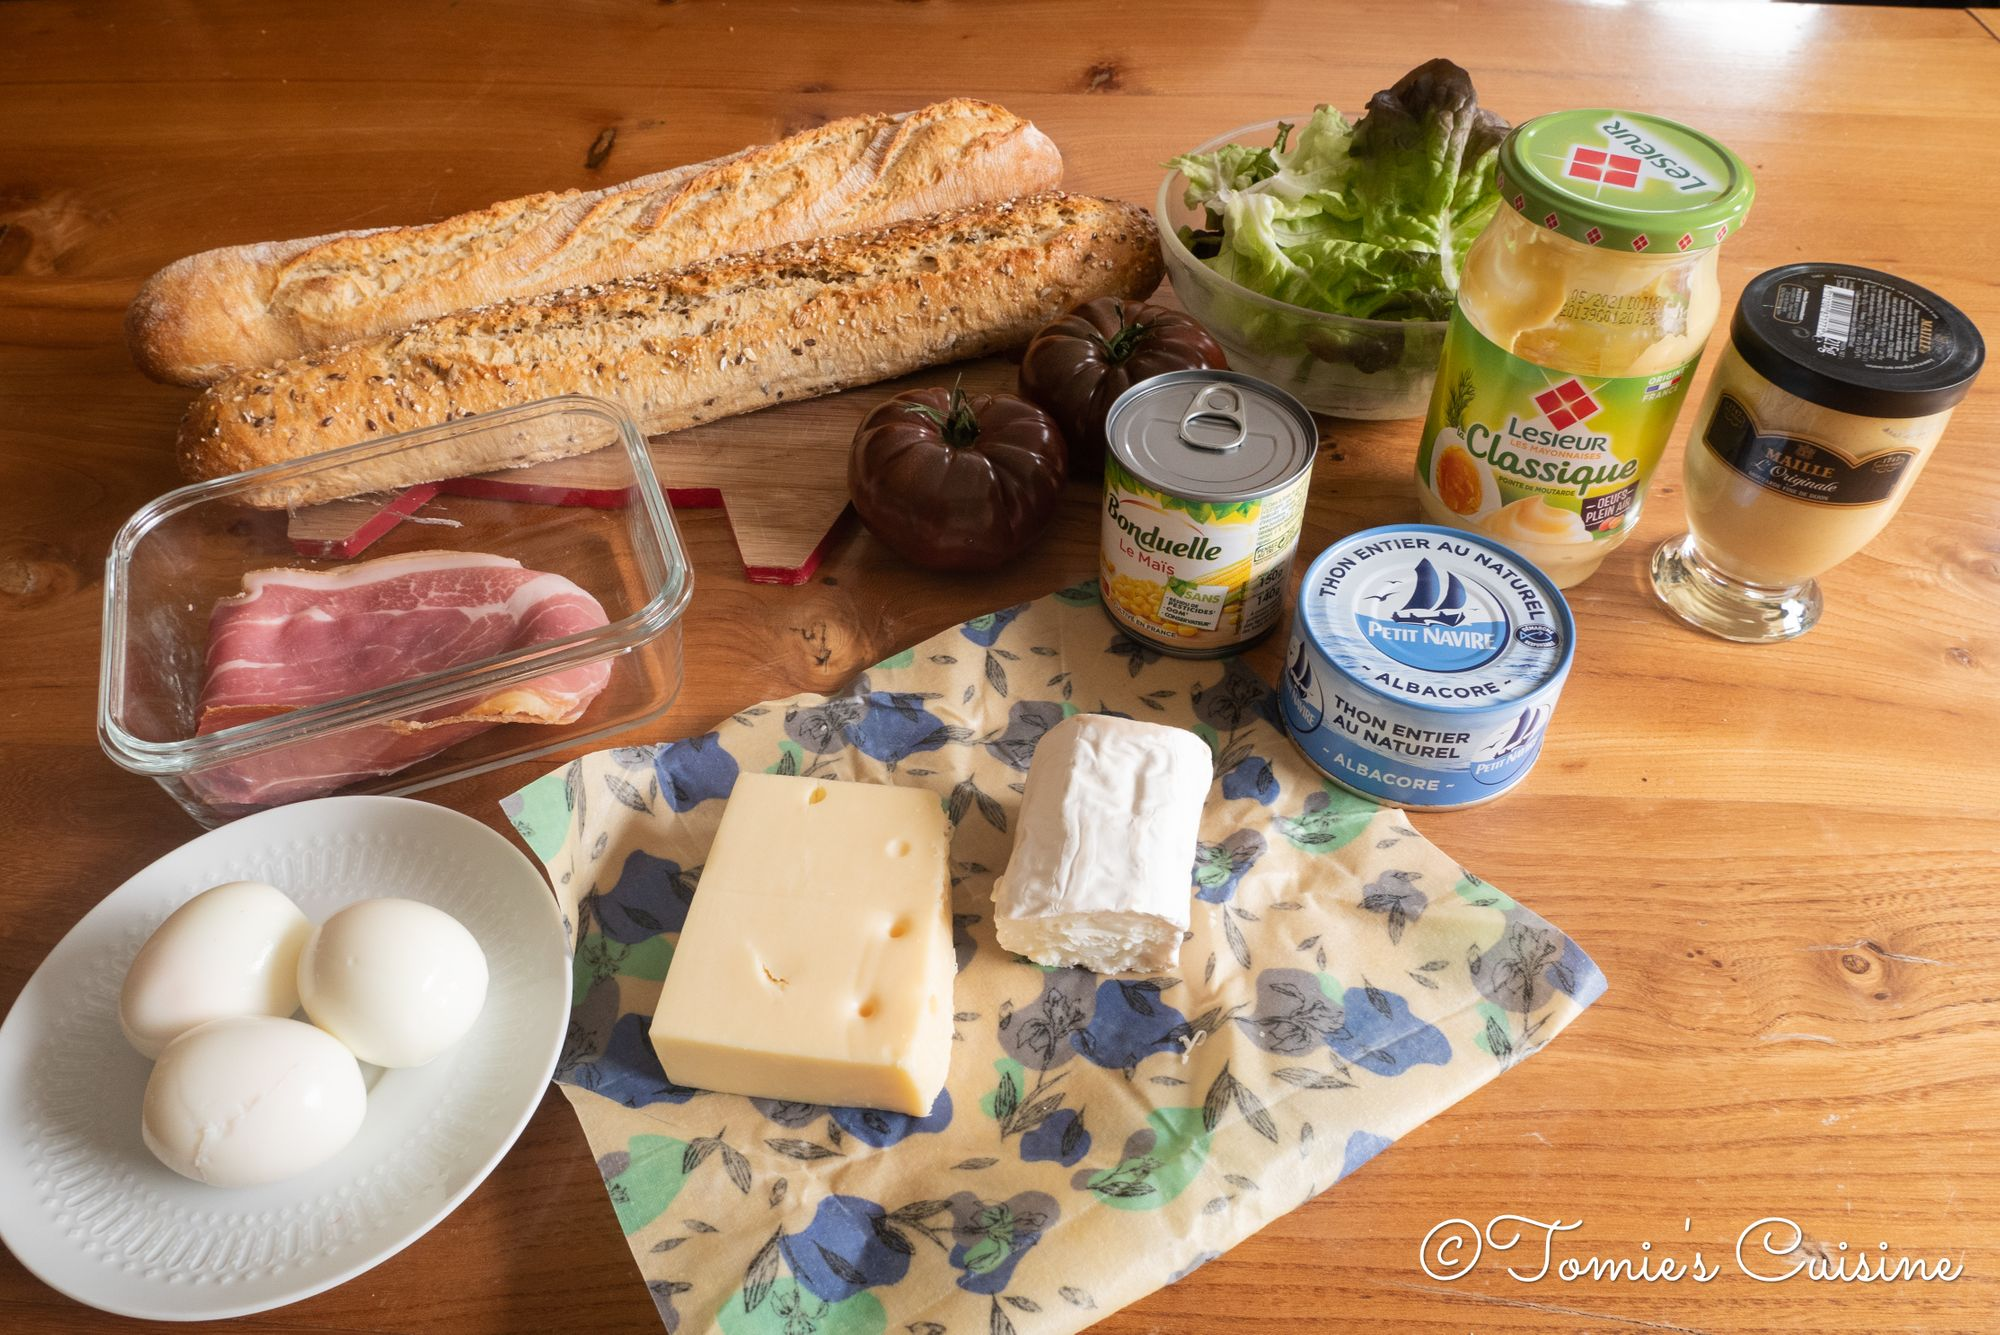 All the ingredients used today to prepare the sandwiches